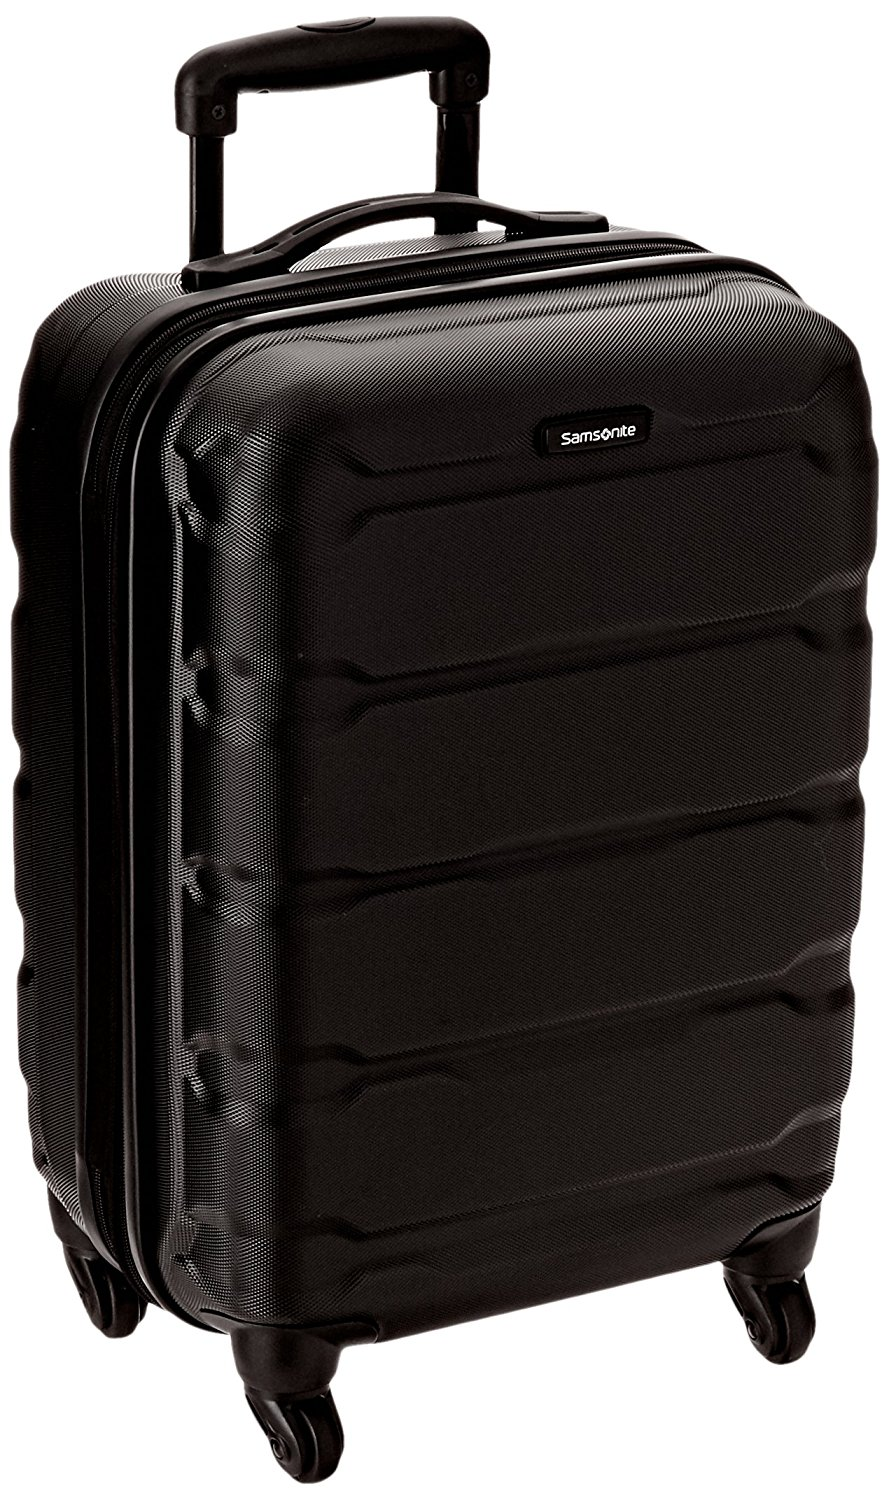 best luggage why invest in expensive suitcase travel tips carry-on Samsonite Omni PC Hardside Spinner 20